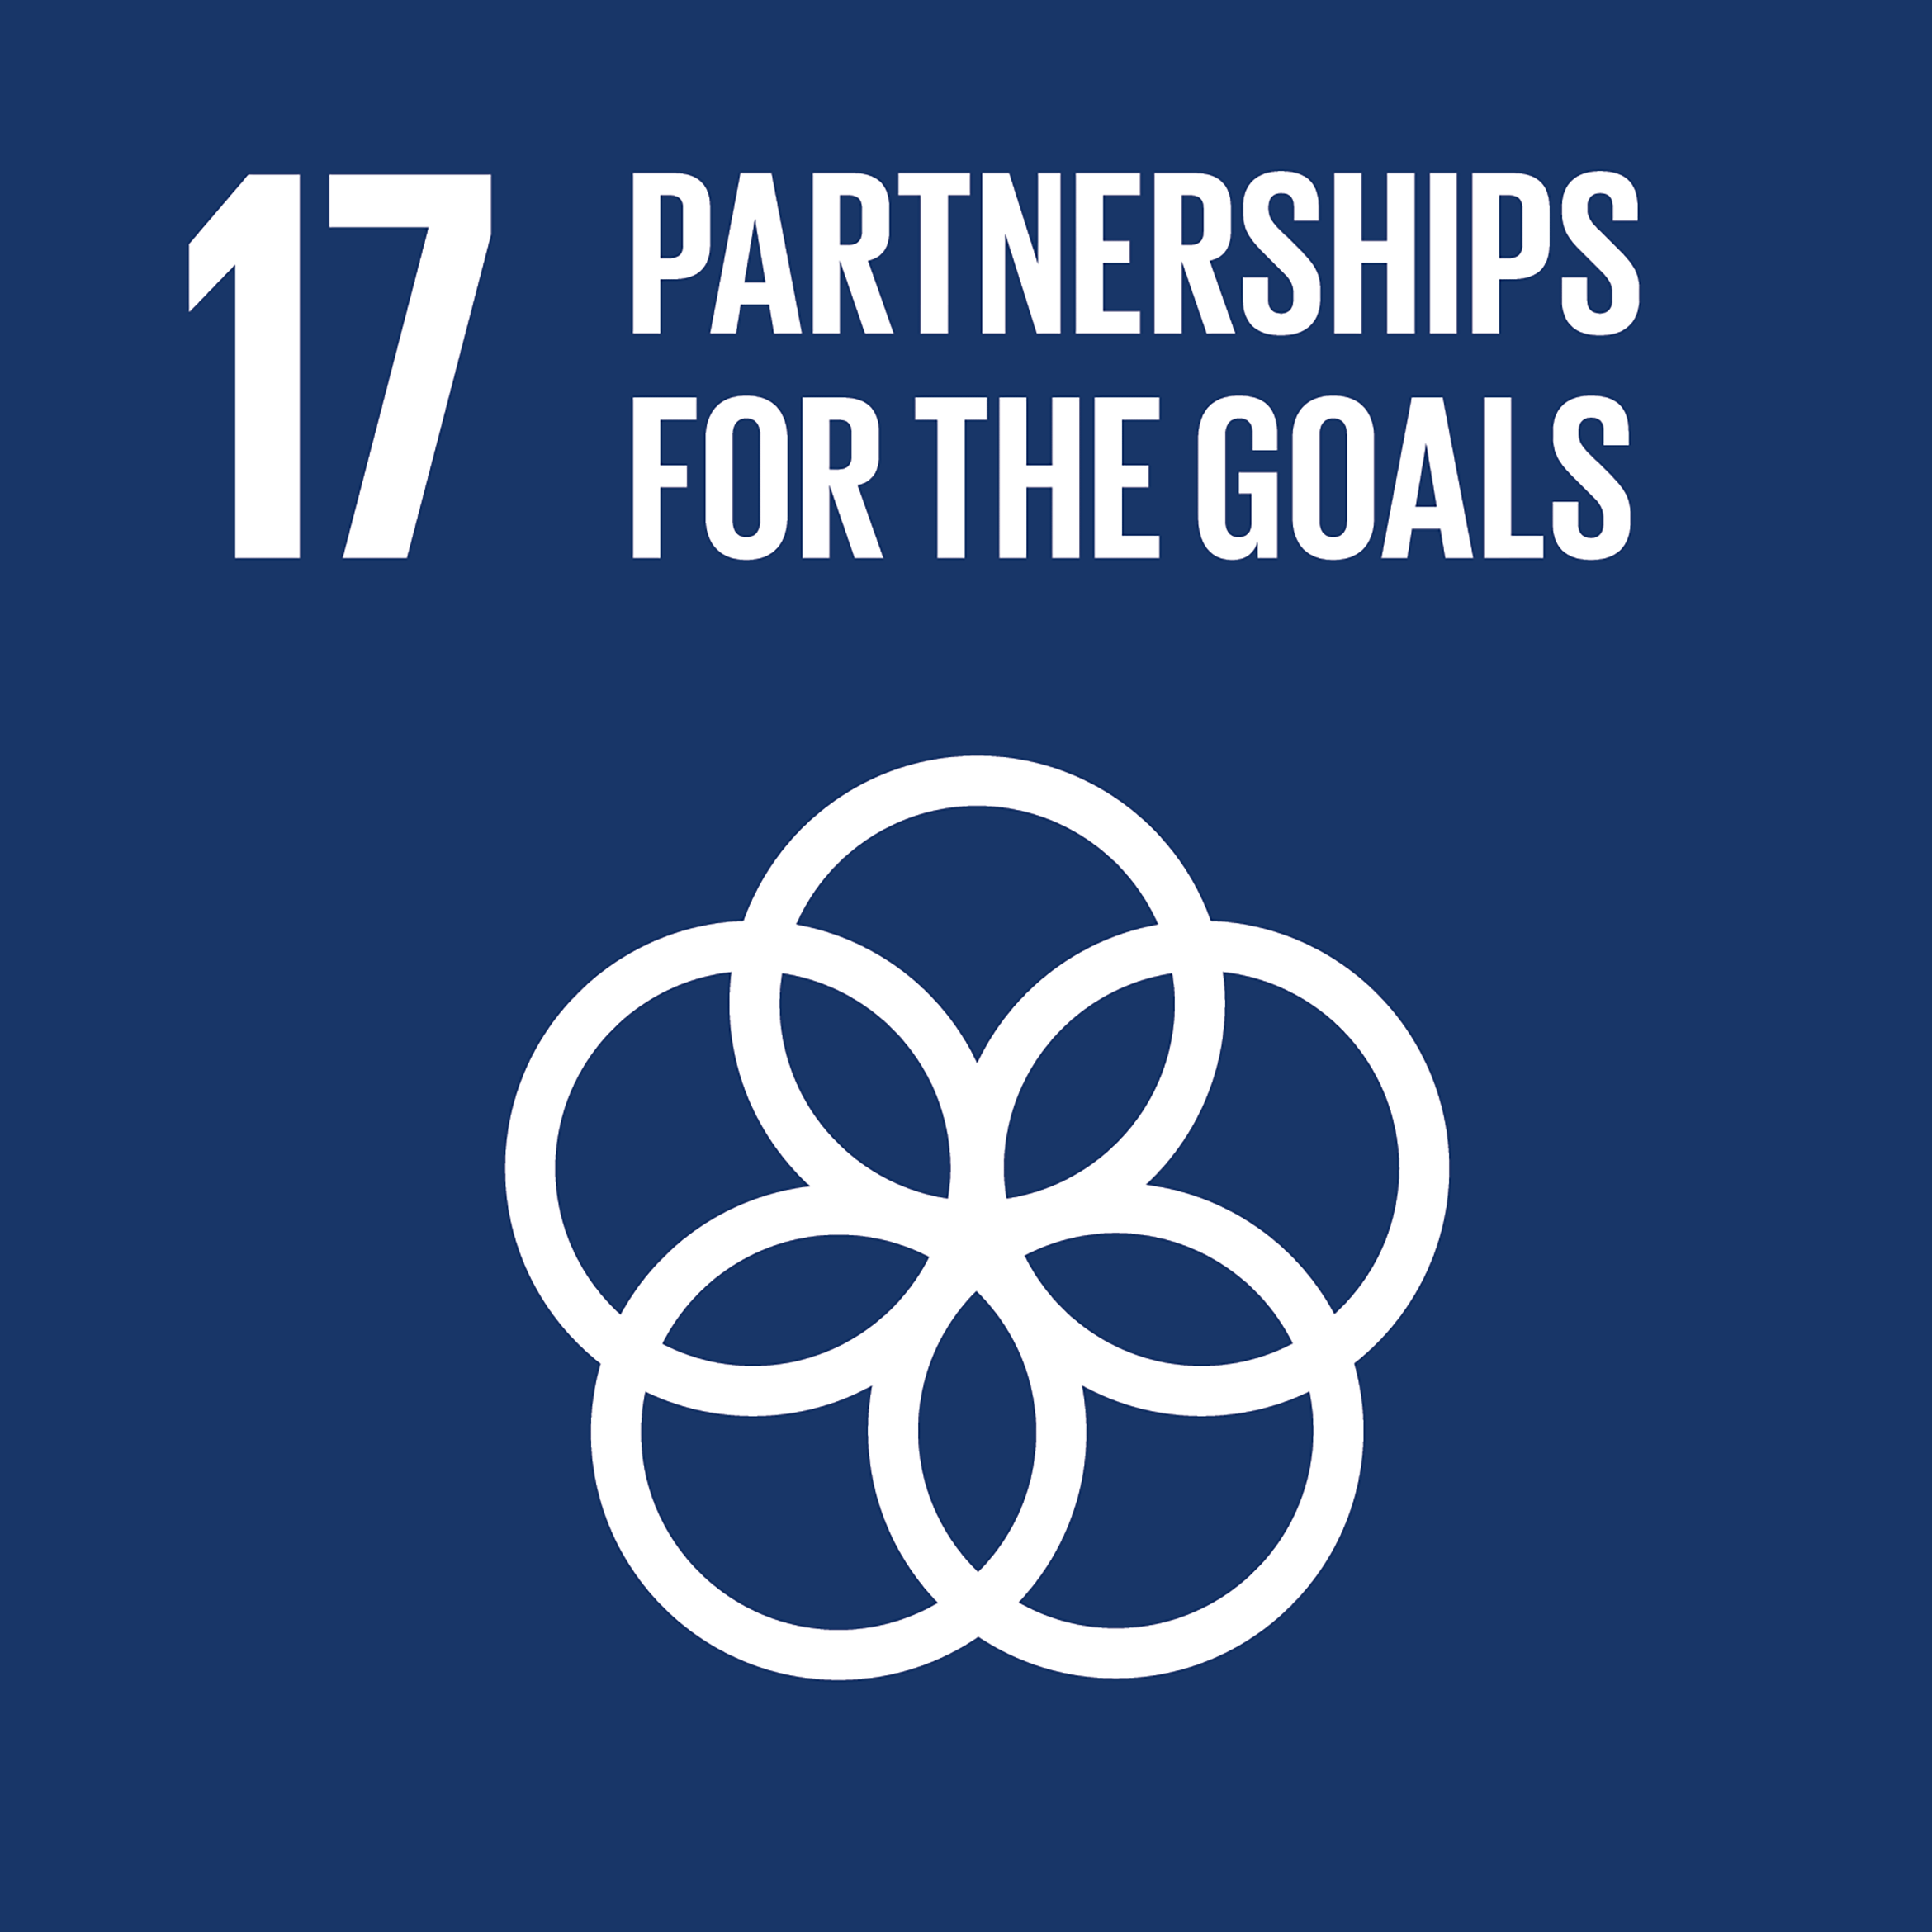 SDG-partnerships-for-goals